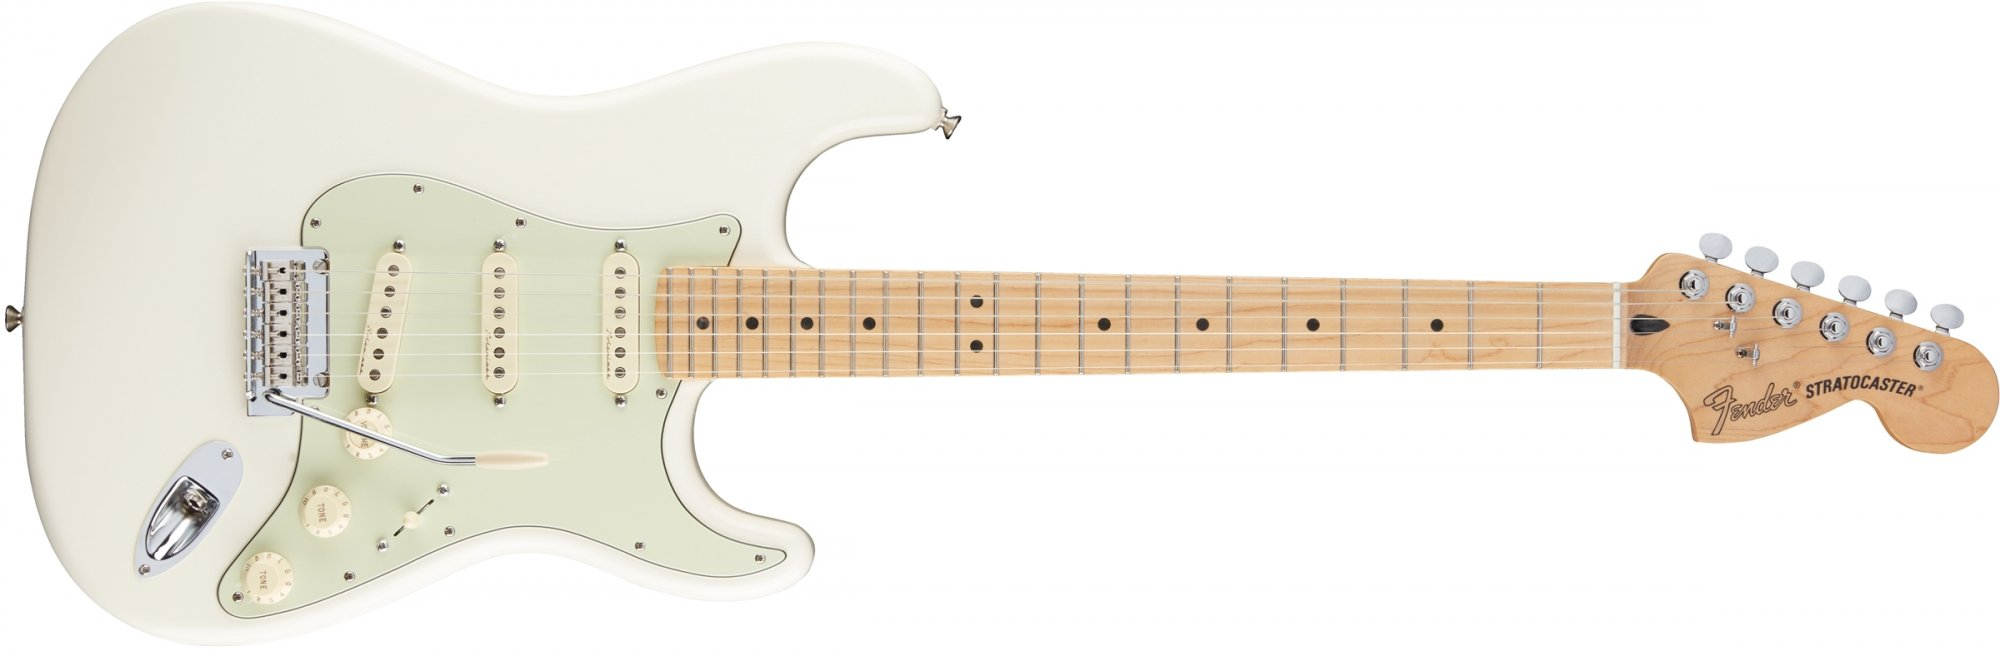 Fender Deluxe Roadhouse Stratocaster Electric Guitar- Olympic White - Maple Fingerboard